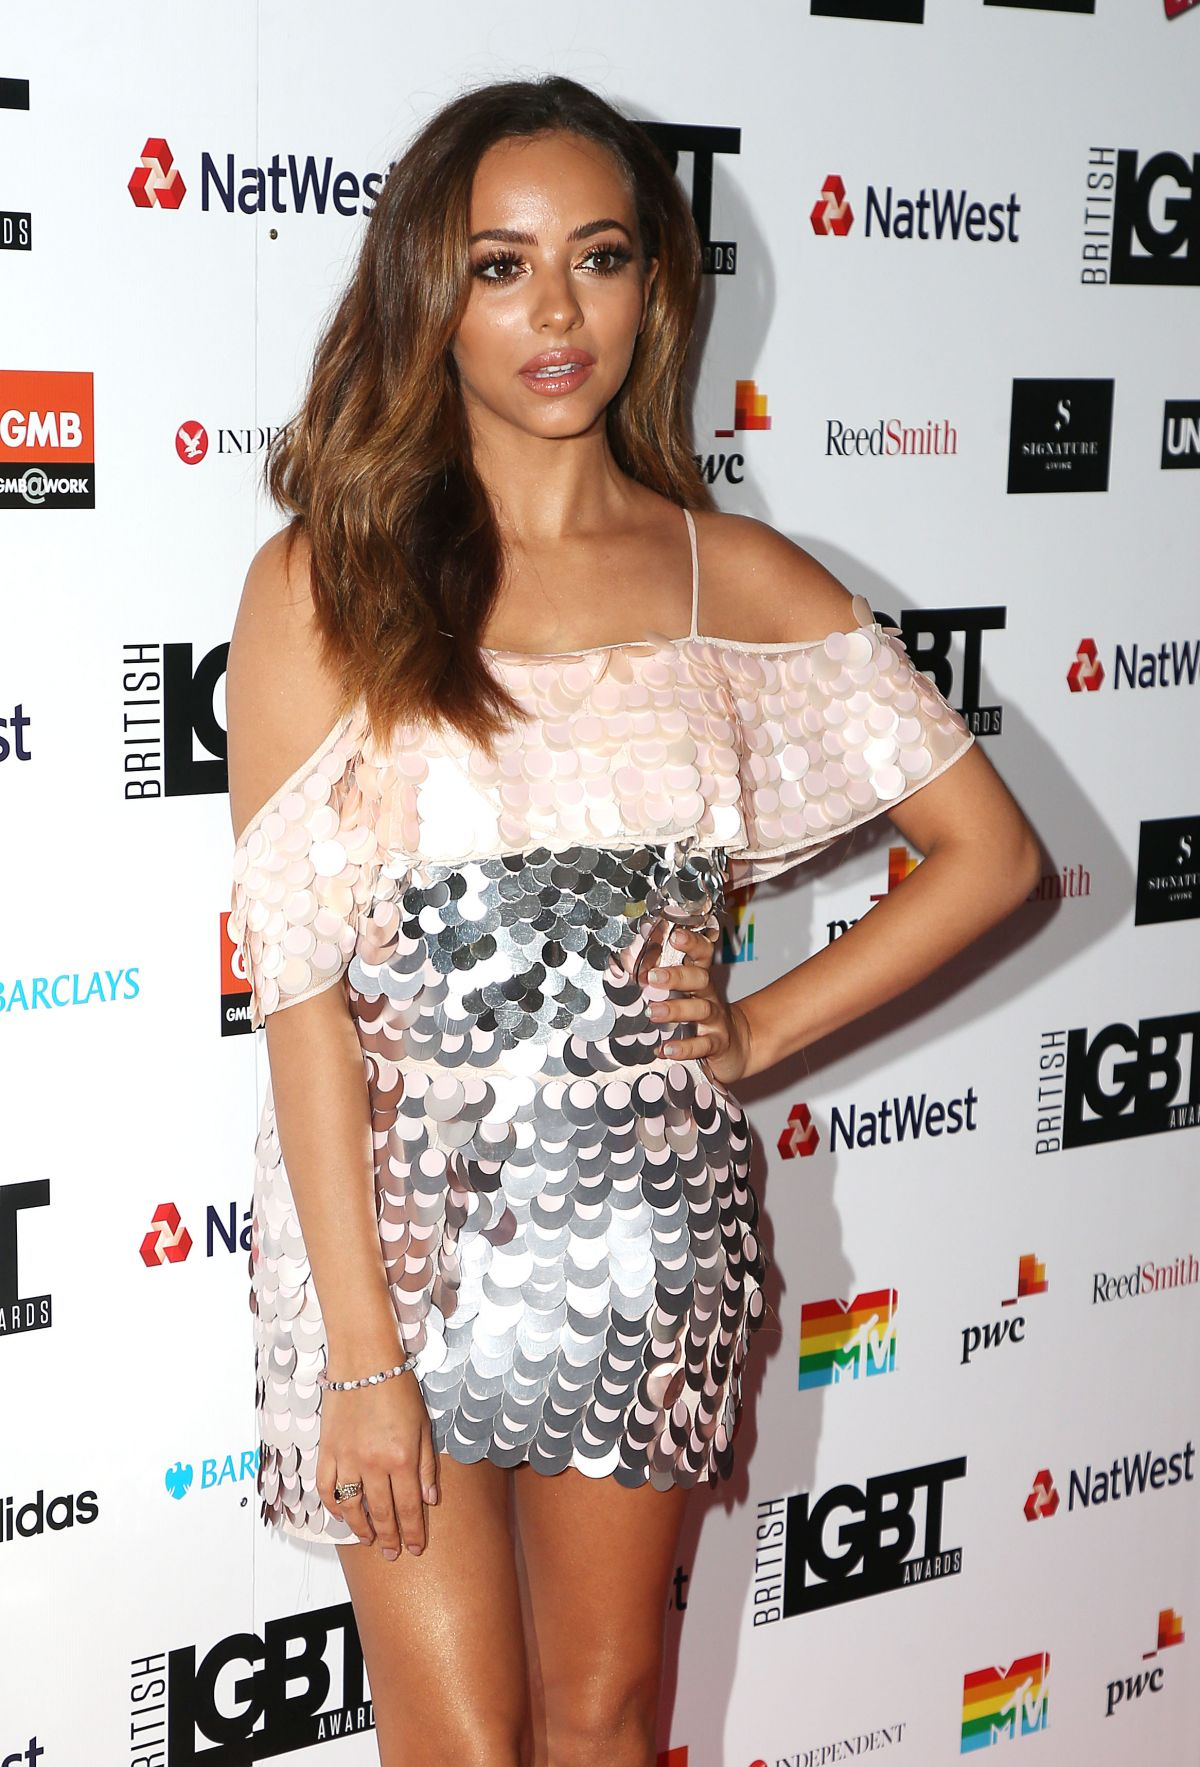 JADE THIRLWALL at British LGBT Awards in London 05/12/2017